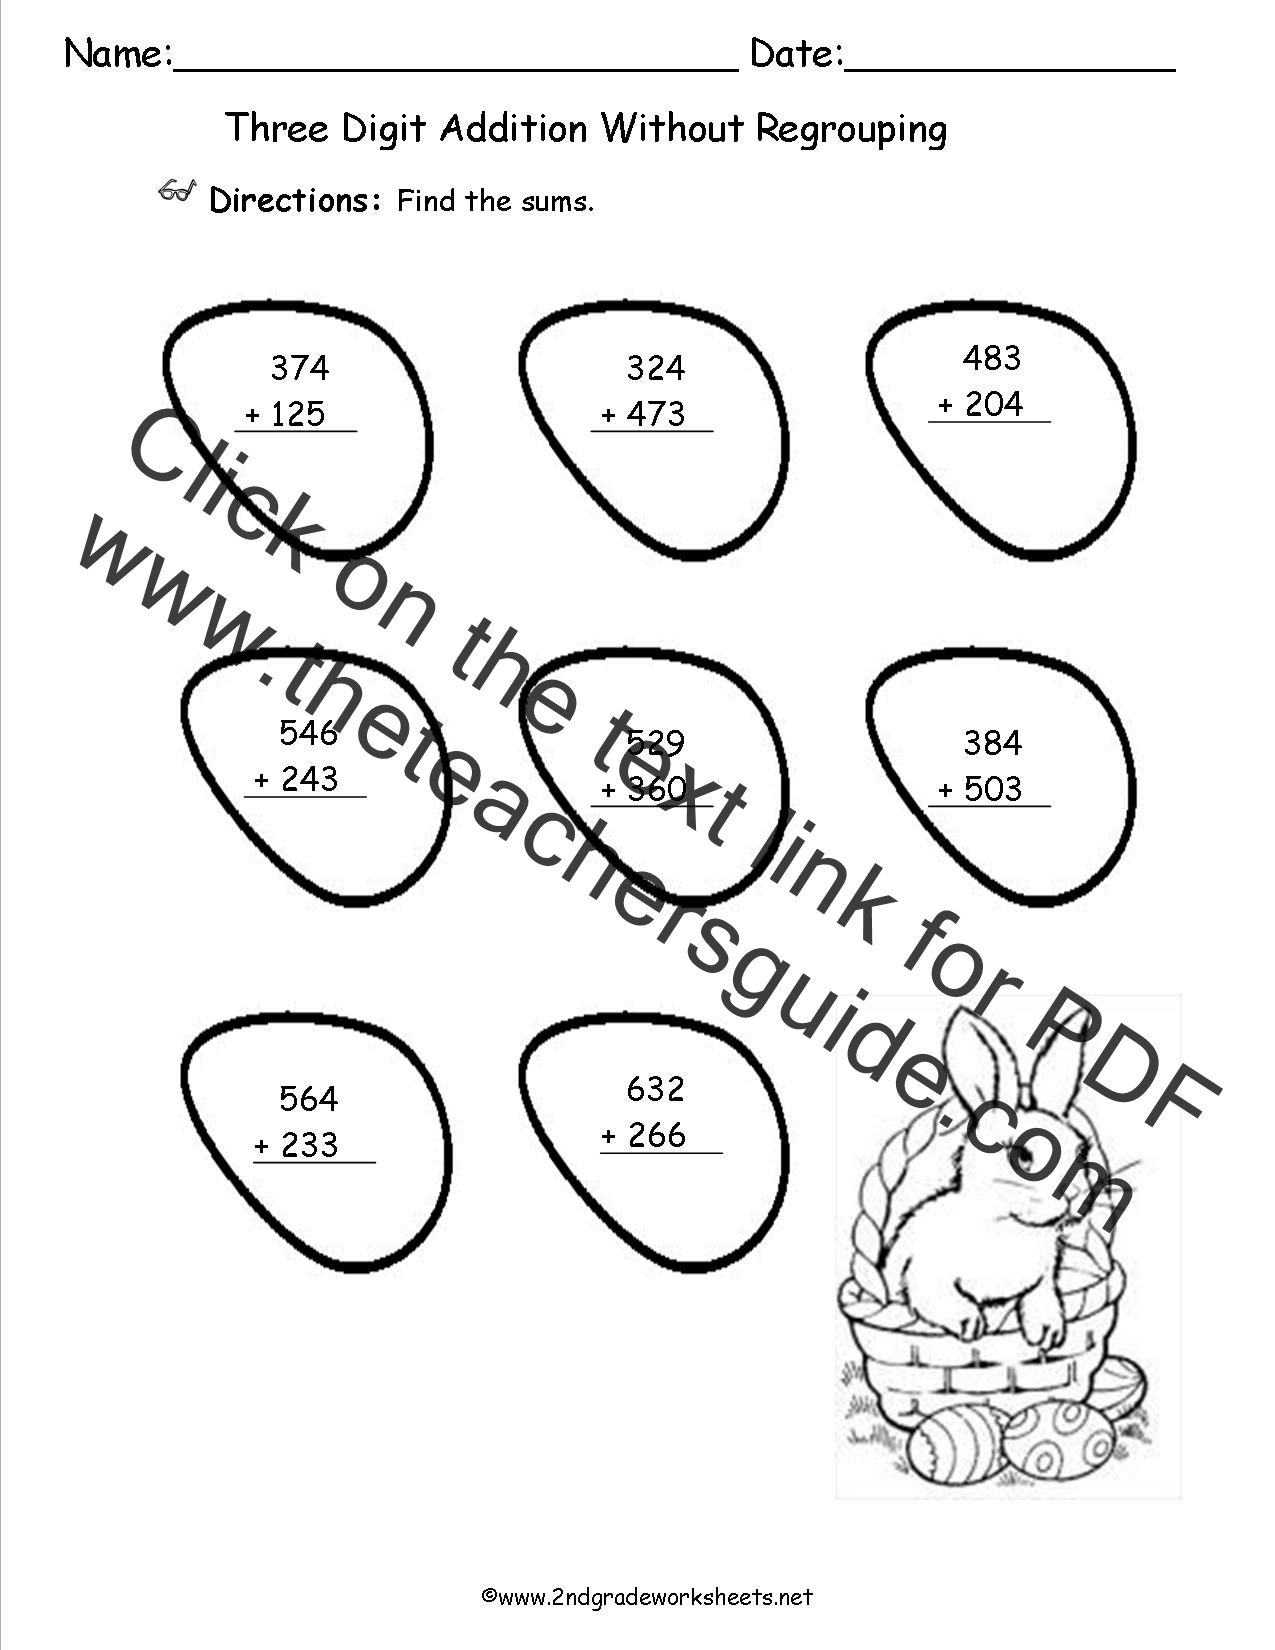 Easter Worksheets and Printouts – Three Digit Subtraction Without Regrouping Worksheets